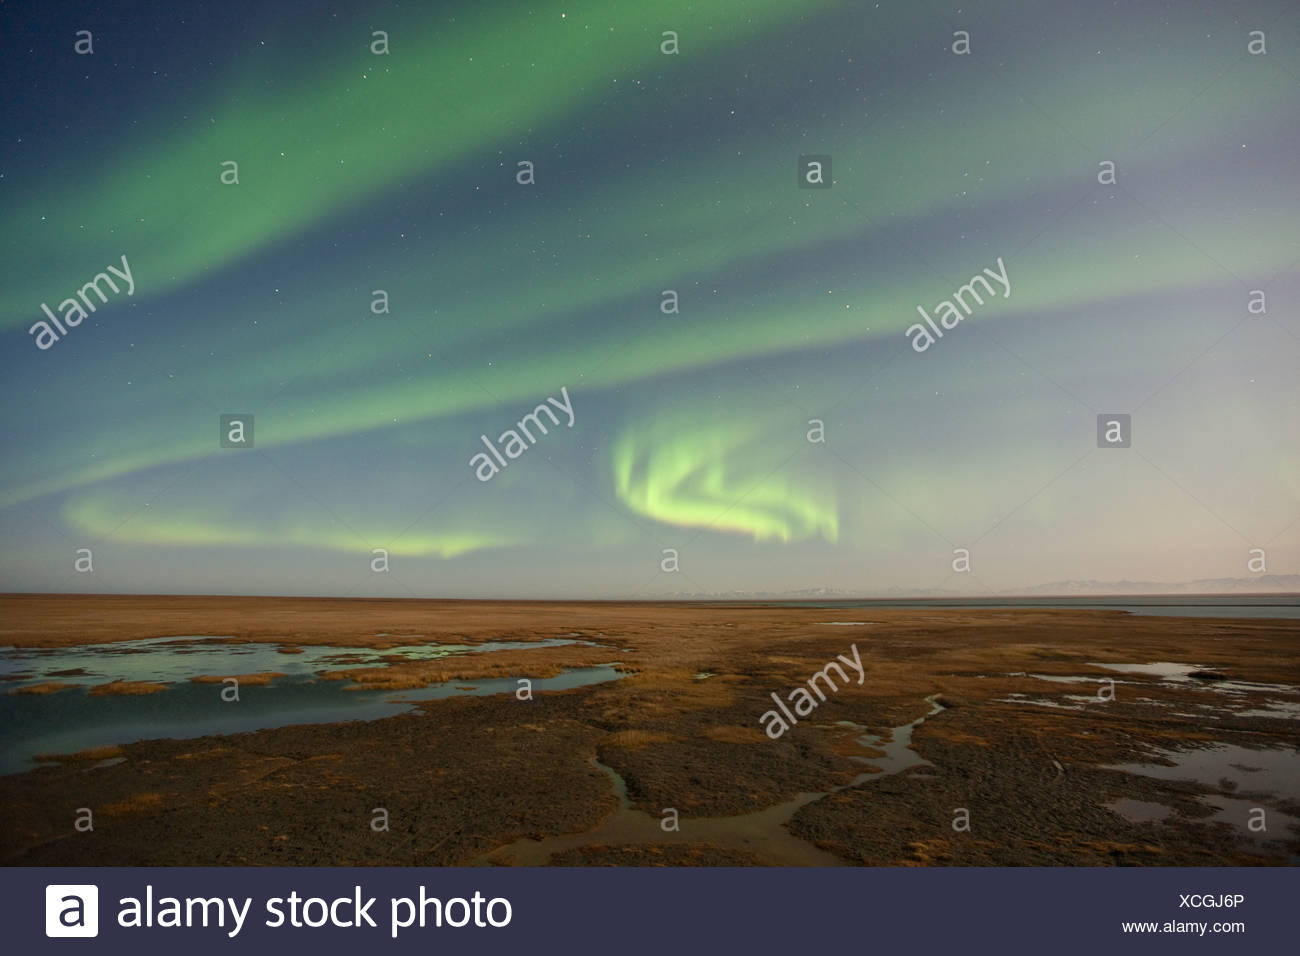 Curtains of colored northern lights (aurora borealis) dance in the night sky over the arctic tundra on the coastal plain of ANWR - Stock Image